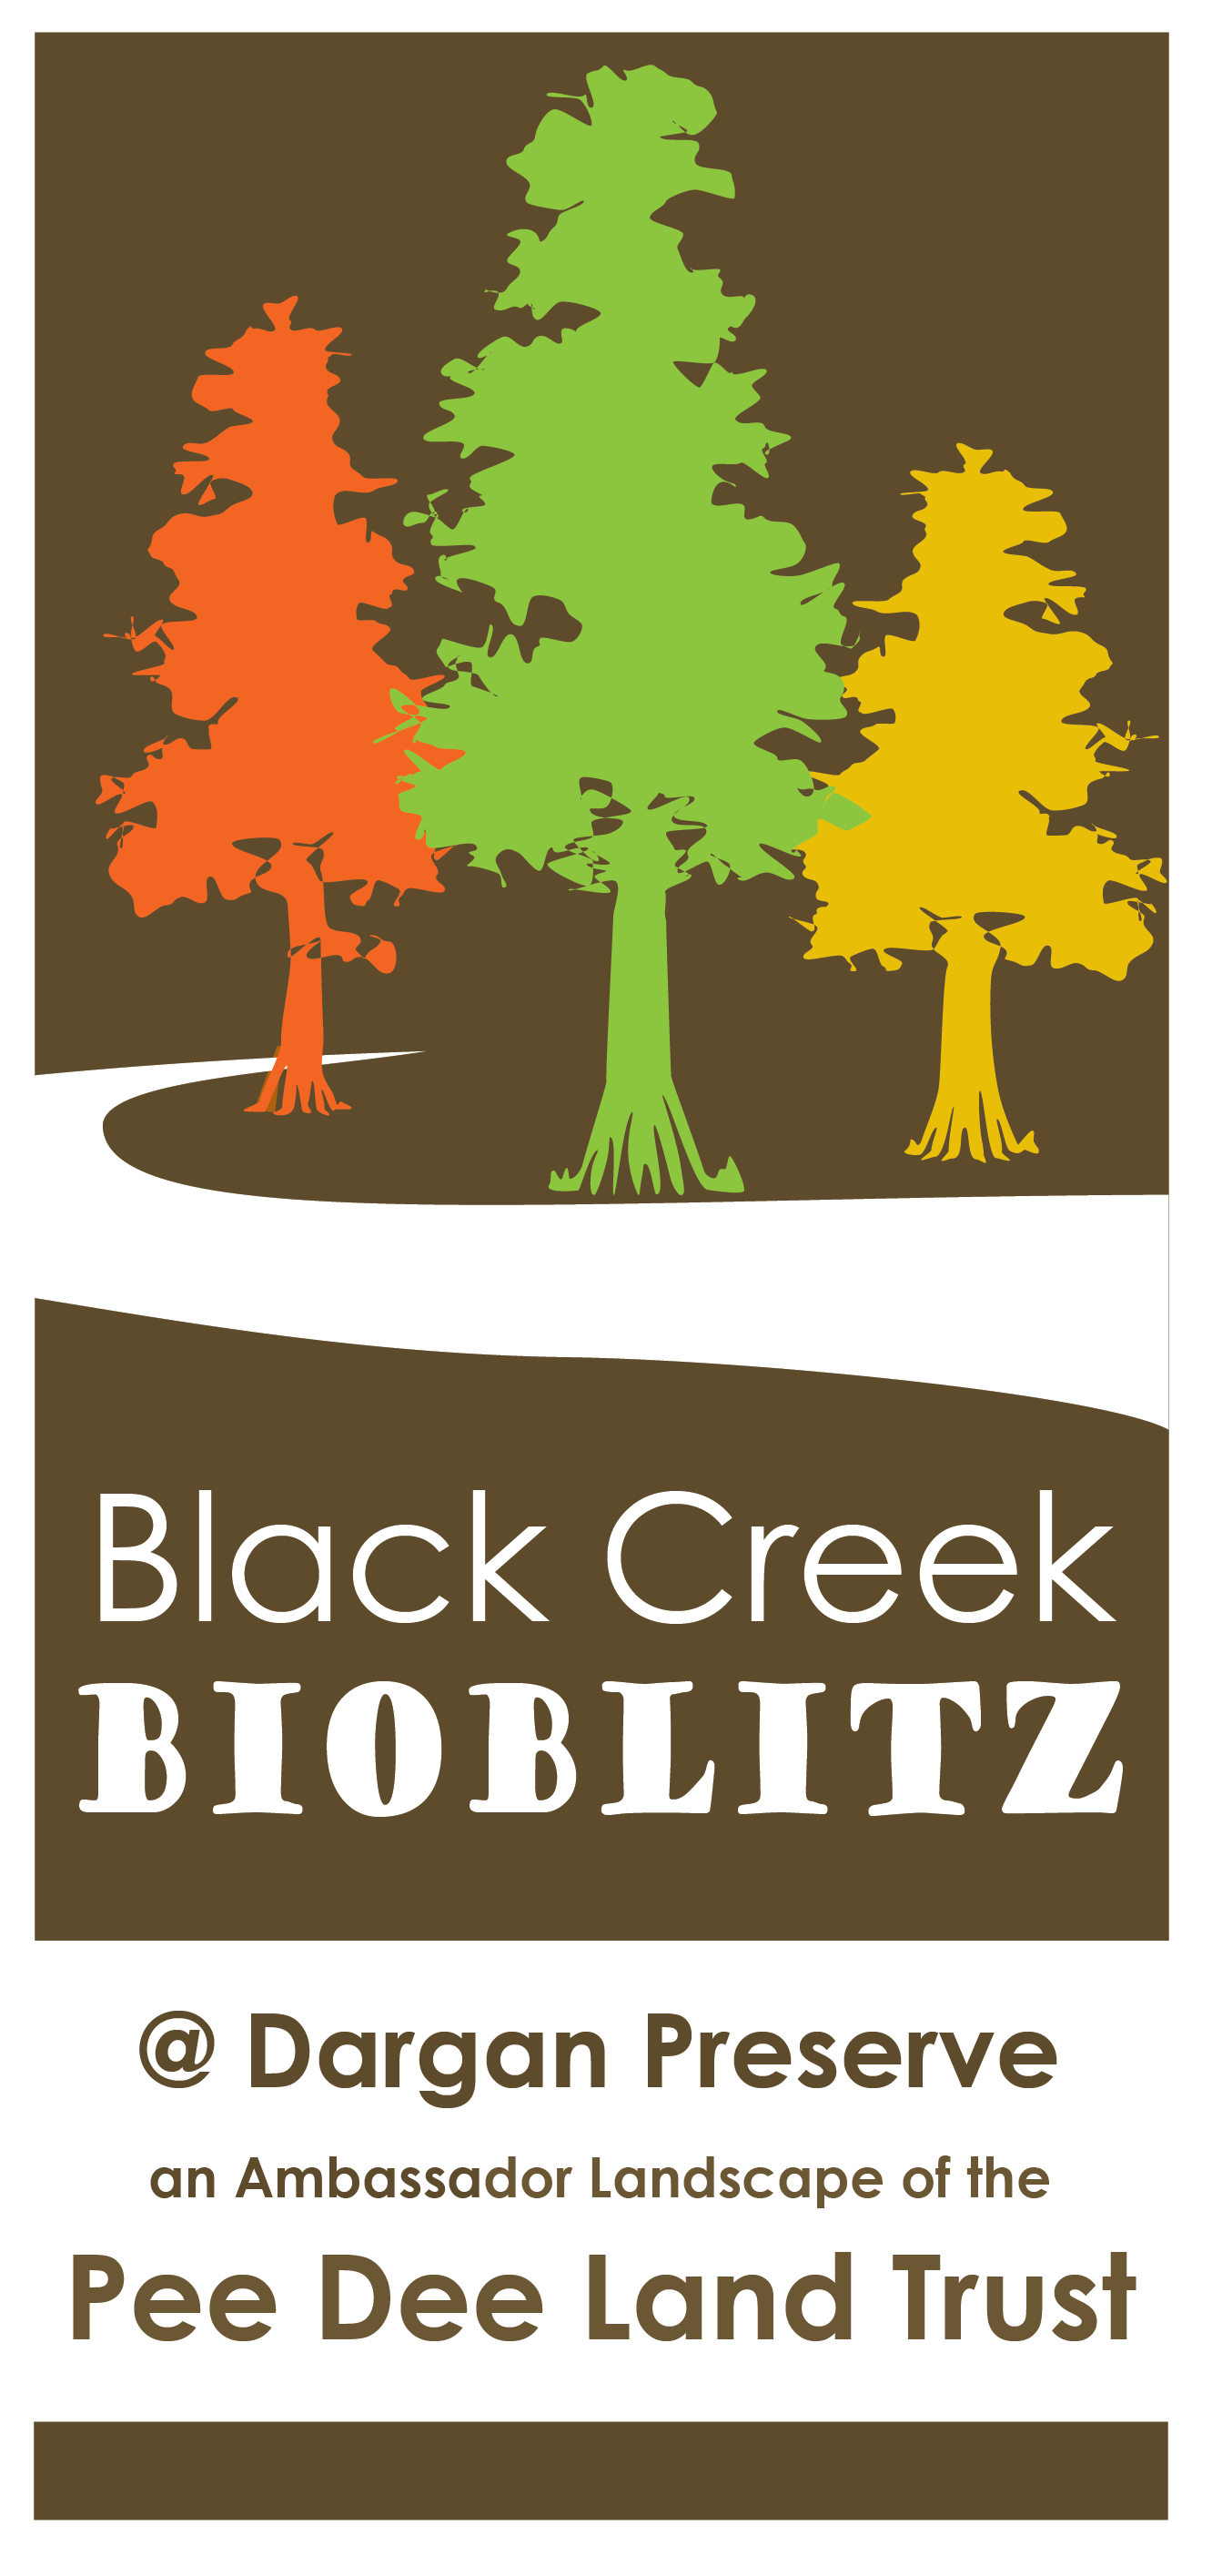 pee dee logo bioblitz final-02 cropped